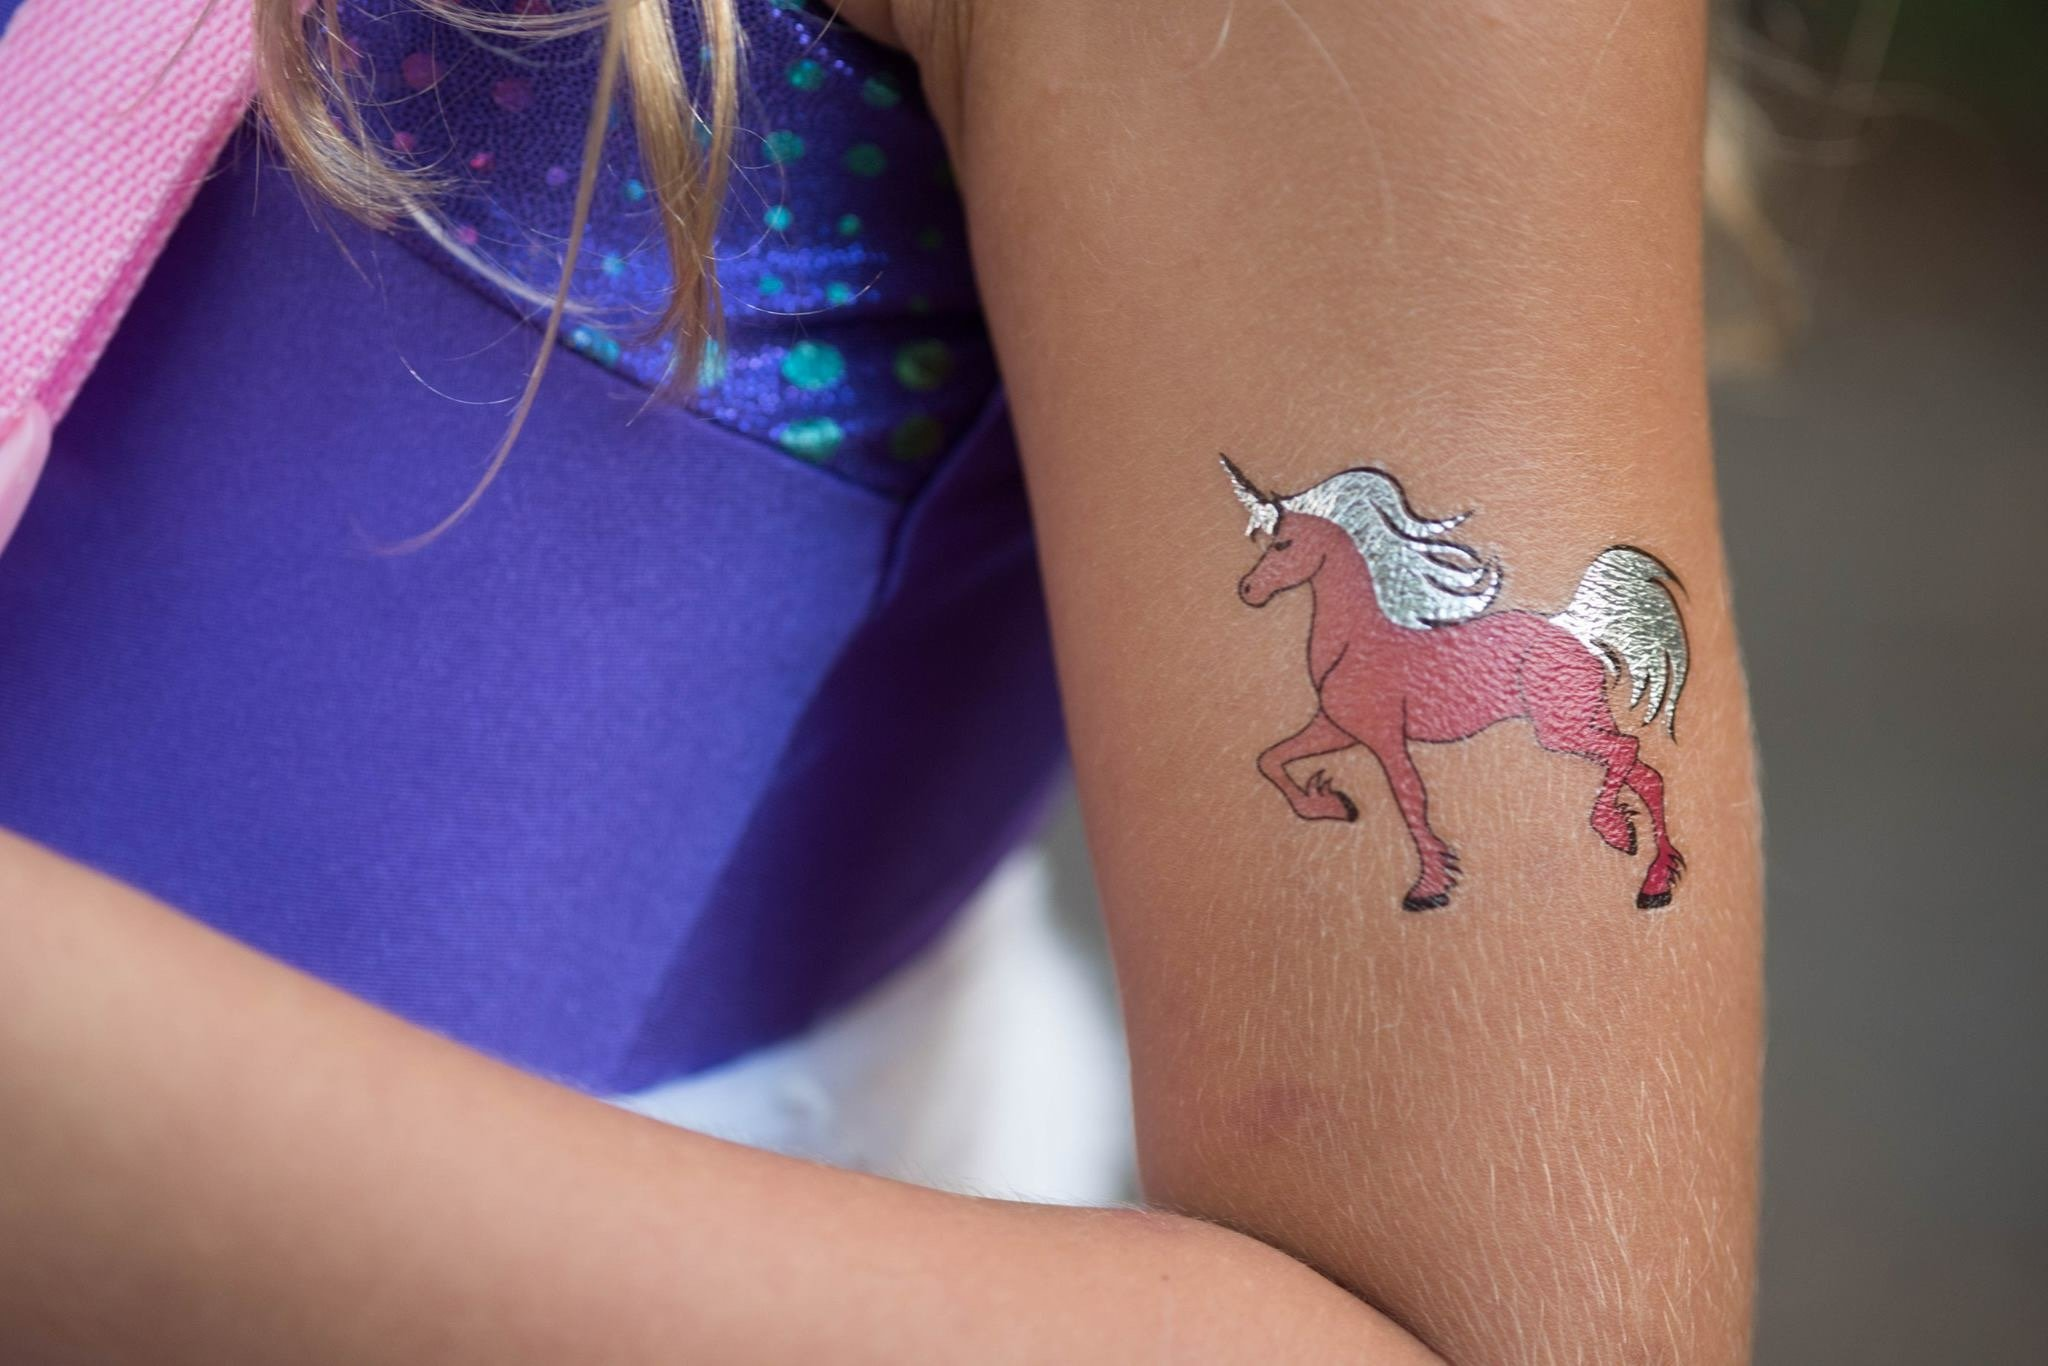 Unicorn Temporary Tattoos for Girls Best for Unicorn Party Supplies Party Favors and Unicorn Birthdays Beautiful Metallic Unicorn and Pegasus Tattoos By John & Judy 7